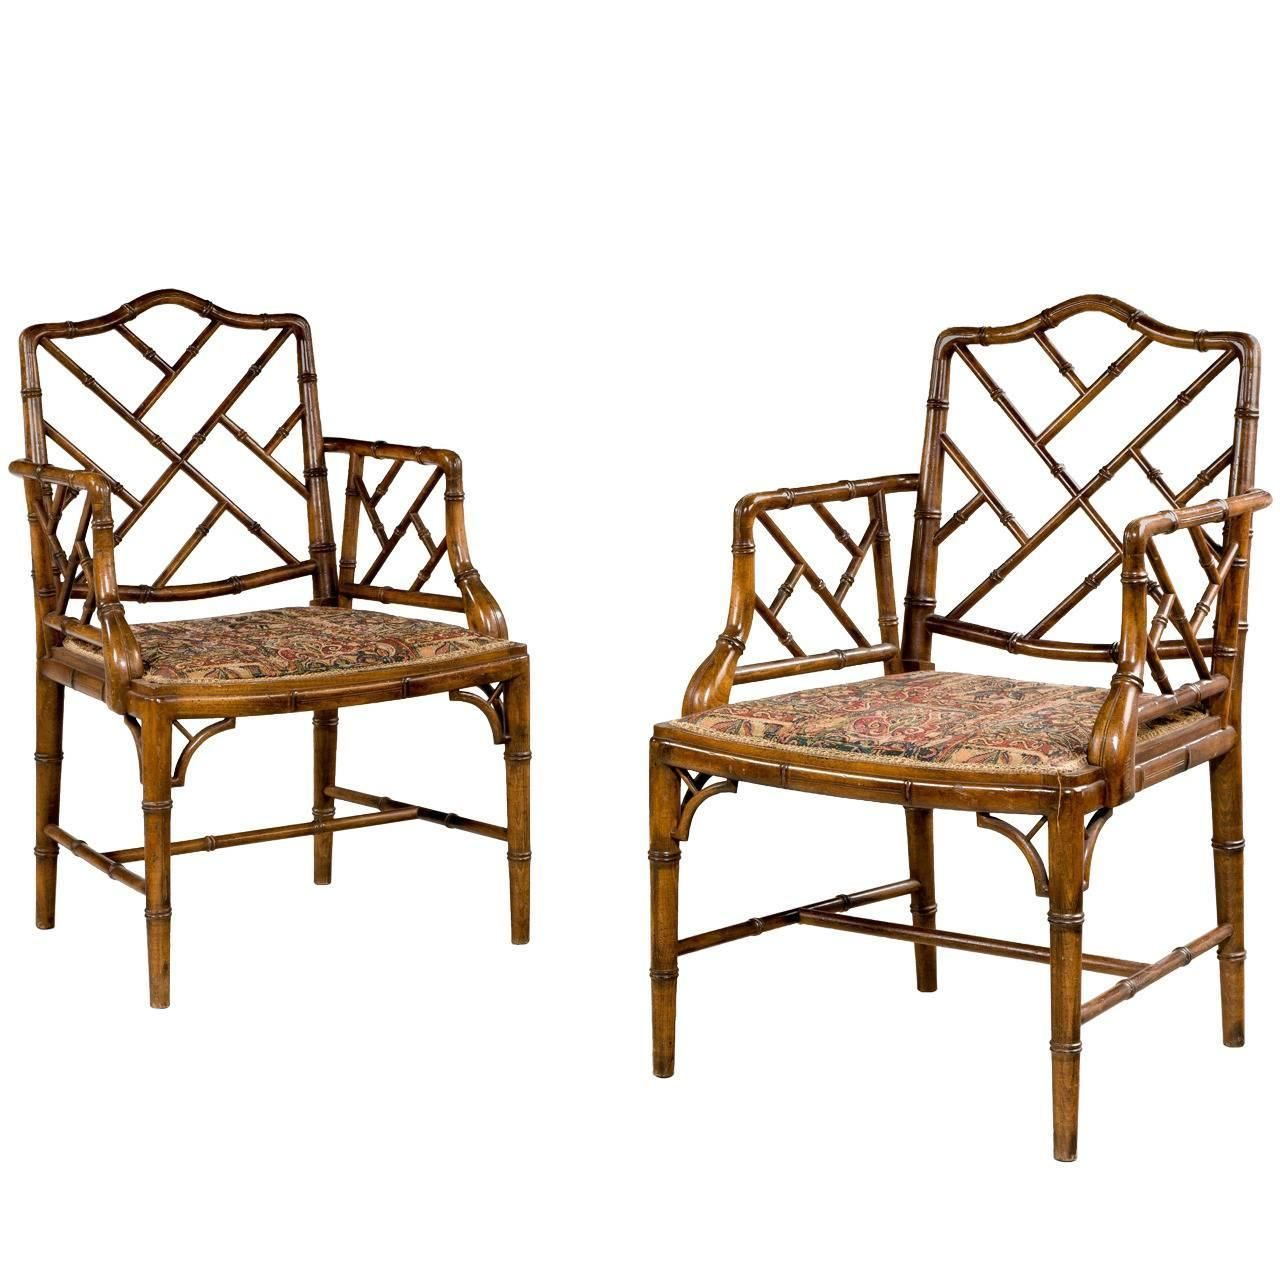 inspired chair ideas brighton bamboo dinning pavilion gallery chairs about round pinterest decoration big best on home